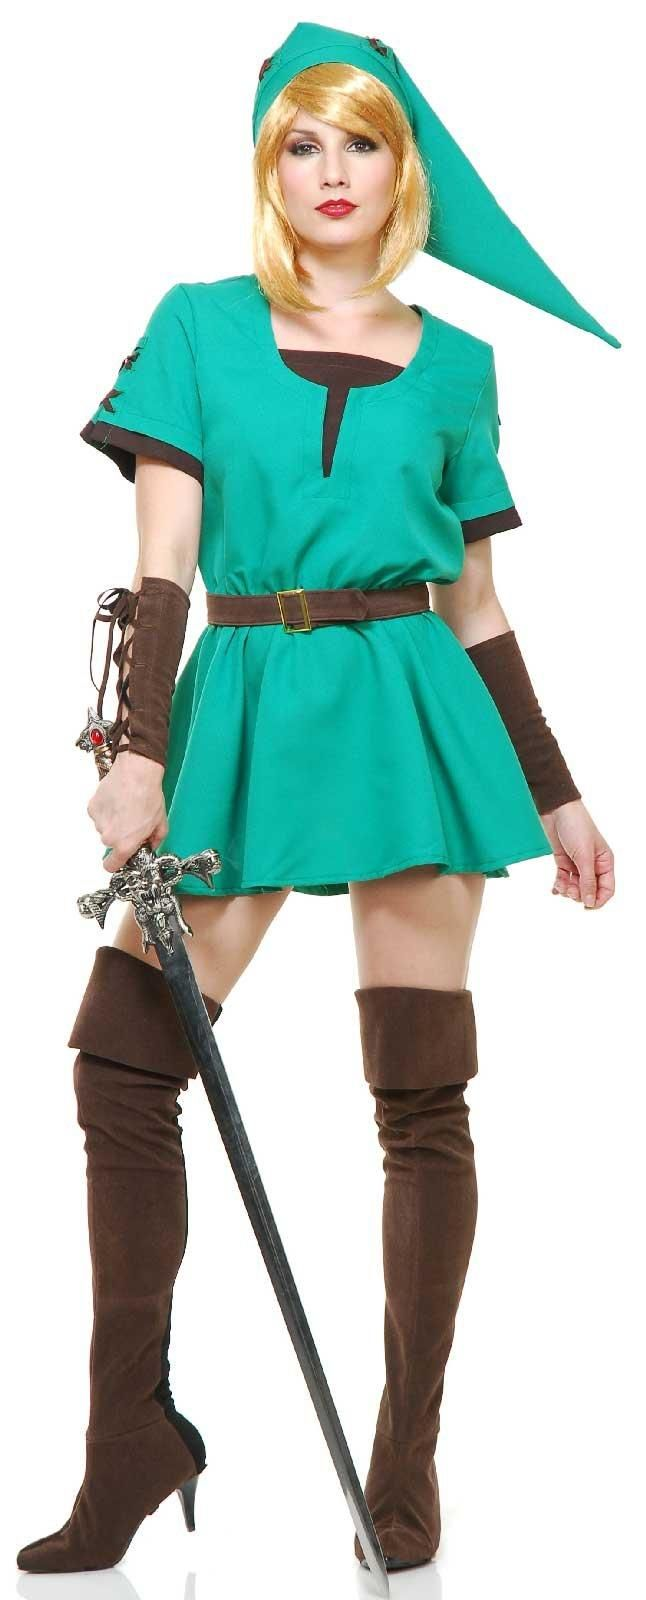 Warrior Elf Adult Princess Costume from BirthdayExpress.com